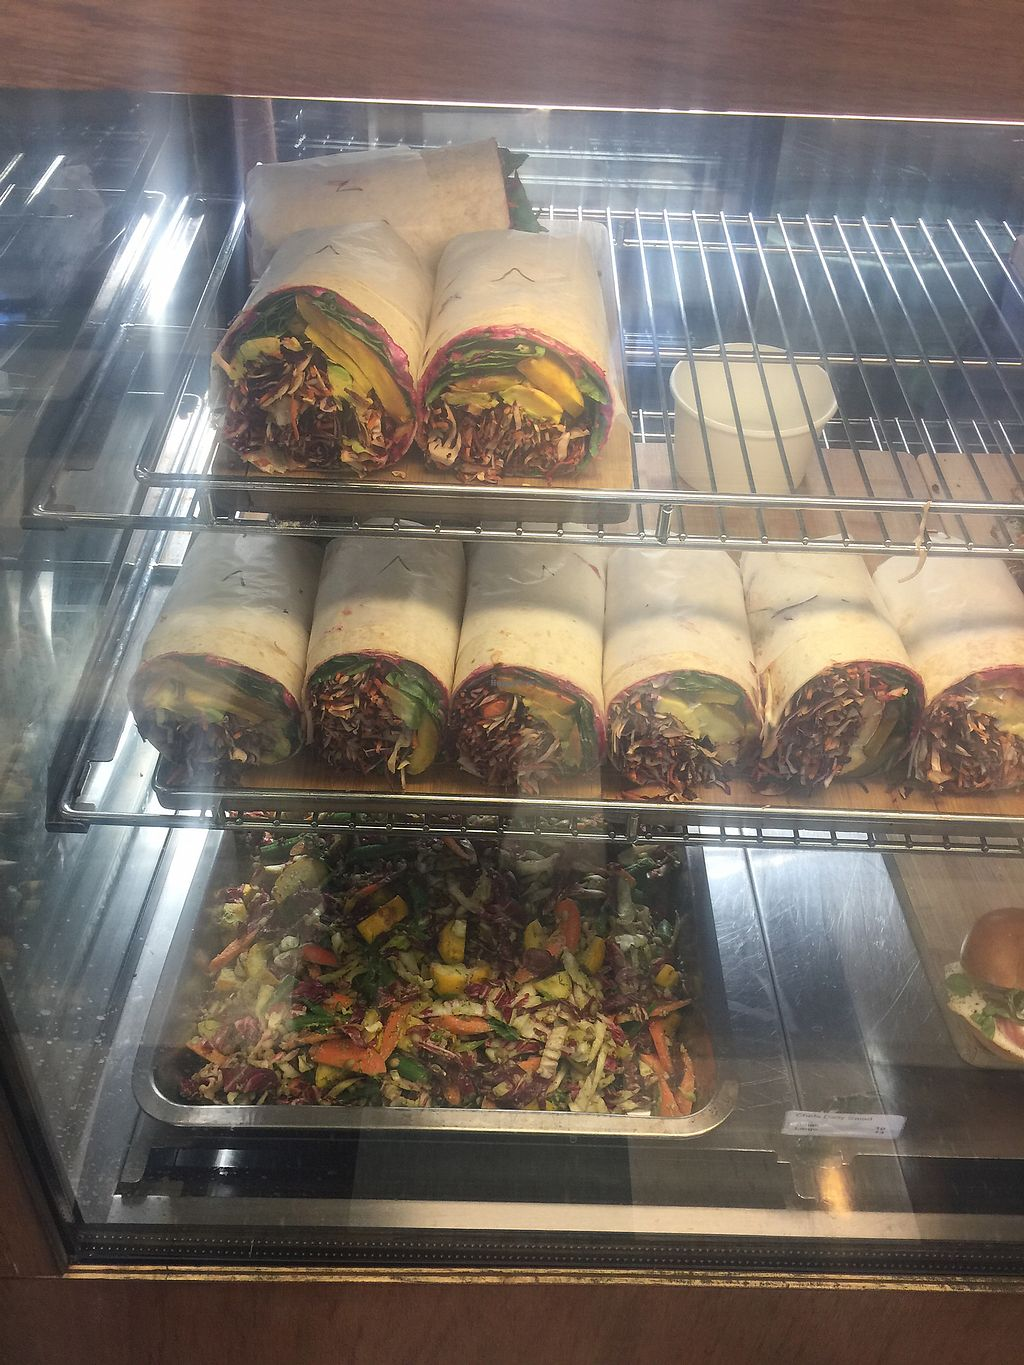 """Photo of Kokako  by <a href=""""/members/profile/Tiggy"""">Tiggy</a> <br/>Vegan wraps and salad in cabinet <br/> December 29, 2017  - <a href='/contact/abuse/image/35948/340342'>Report</a>"""